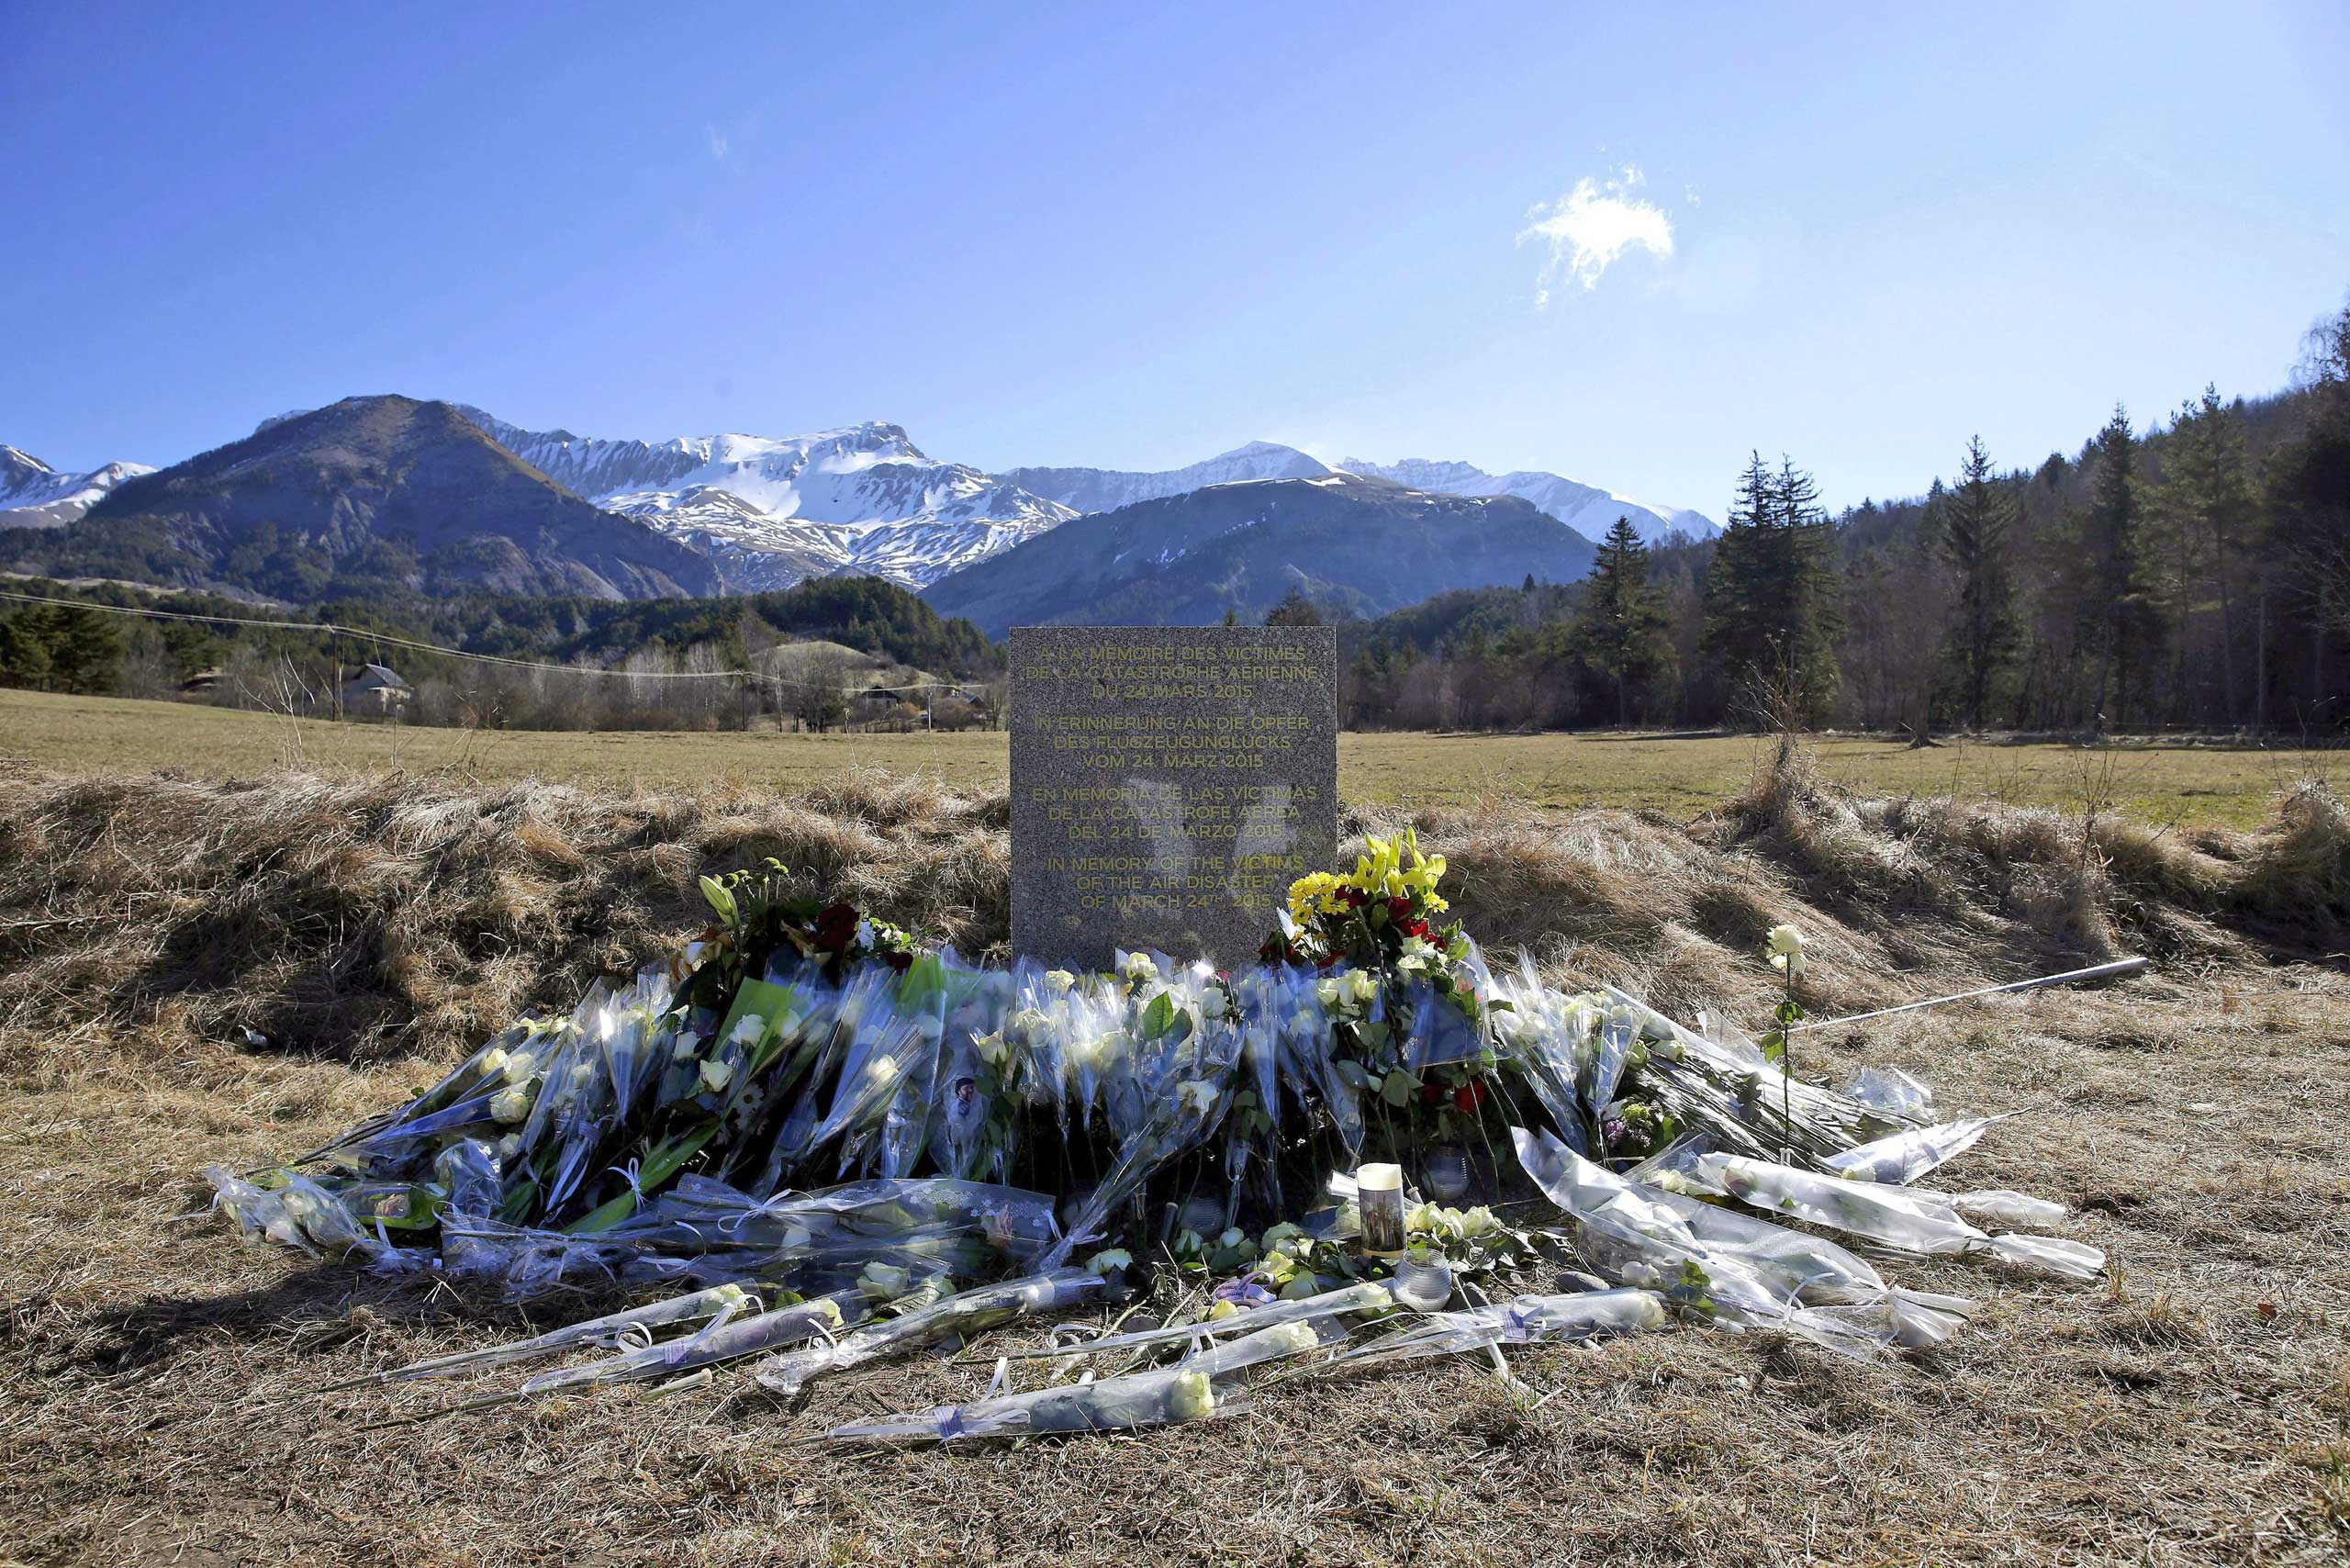 Flowers are left in front of the monument in homage to the victims of Germanwings Flight 4U 9525 in Le Vernet, southeastern France, March 27, 2015.